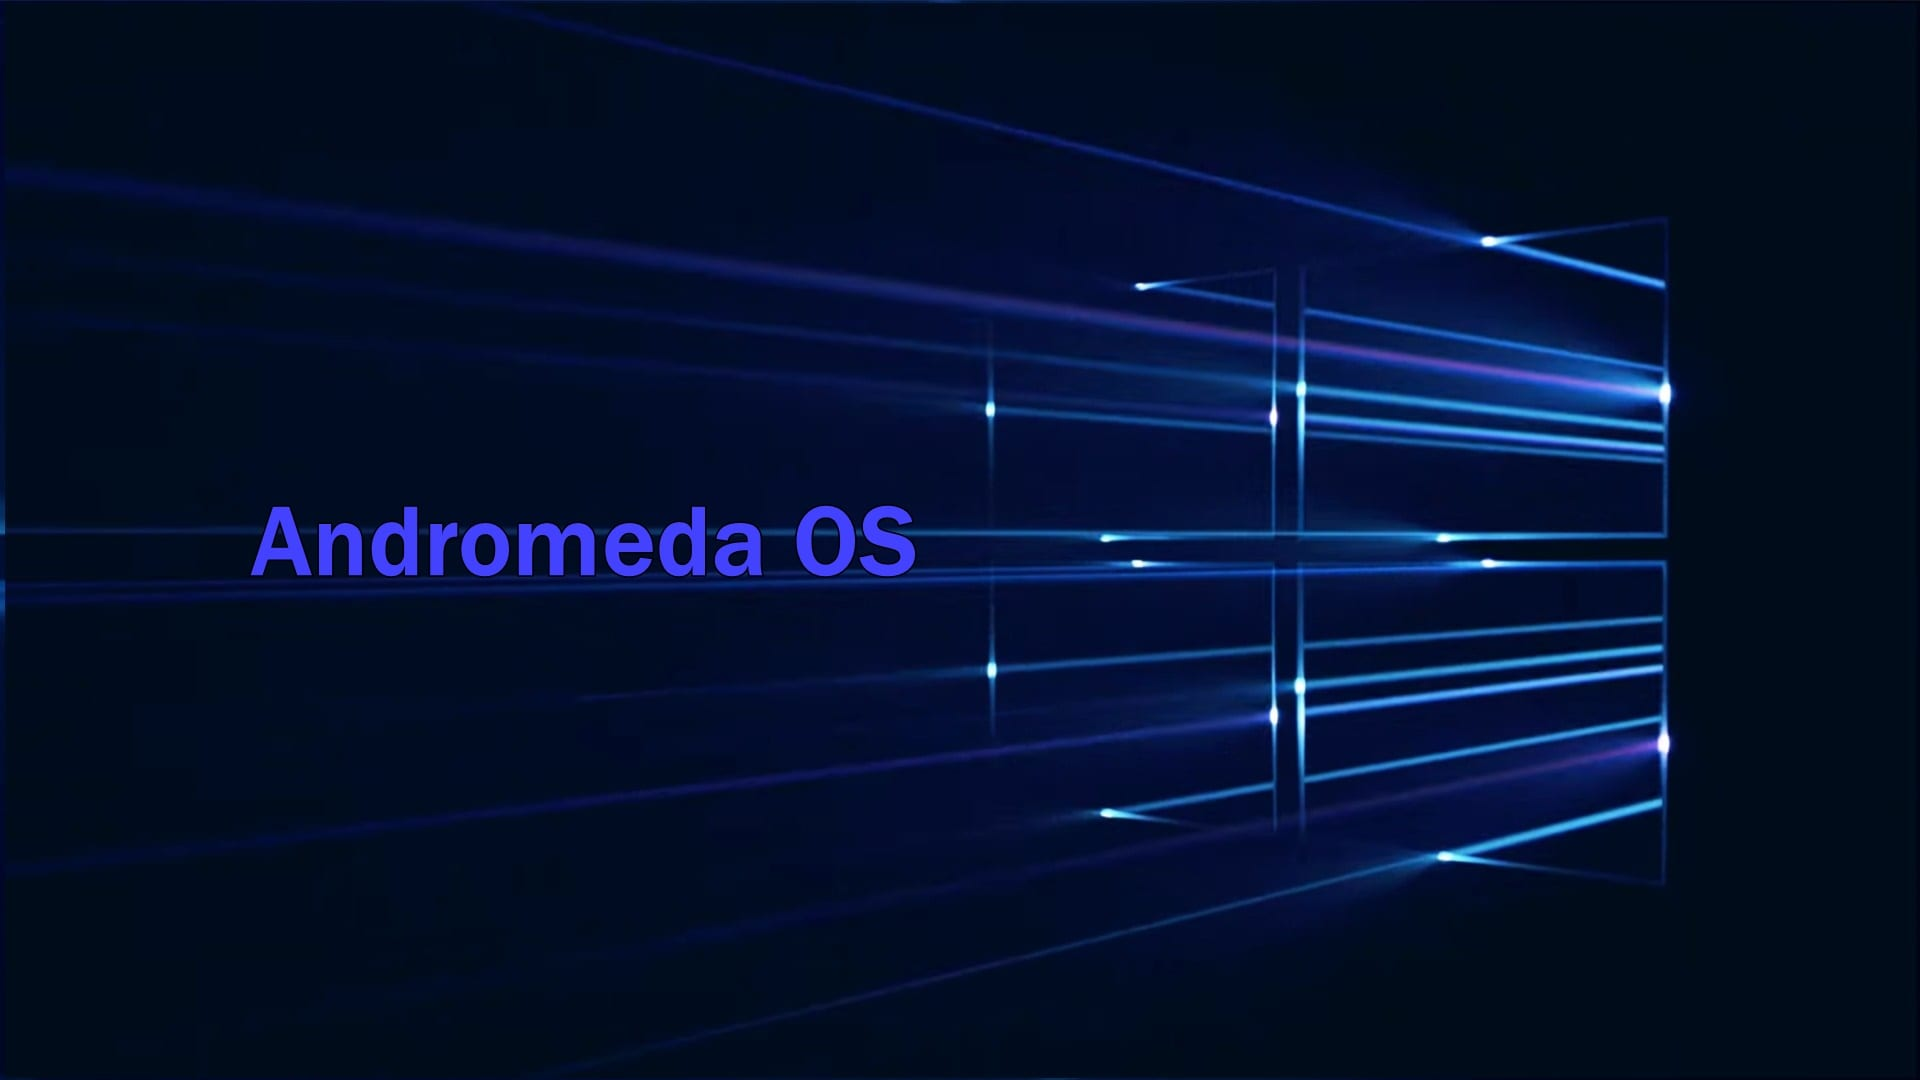 microsoft�s andromeda os to turn windows 10 into a